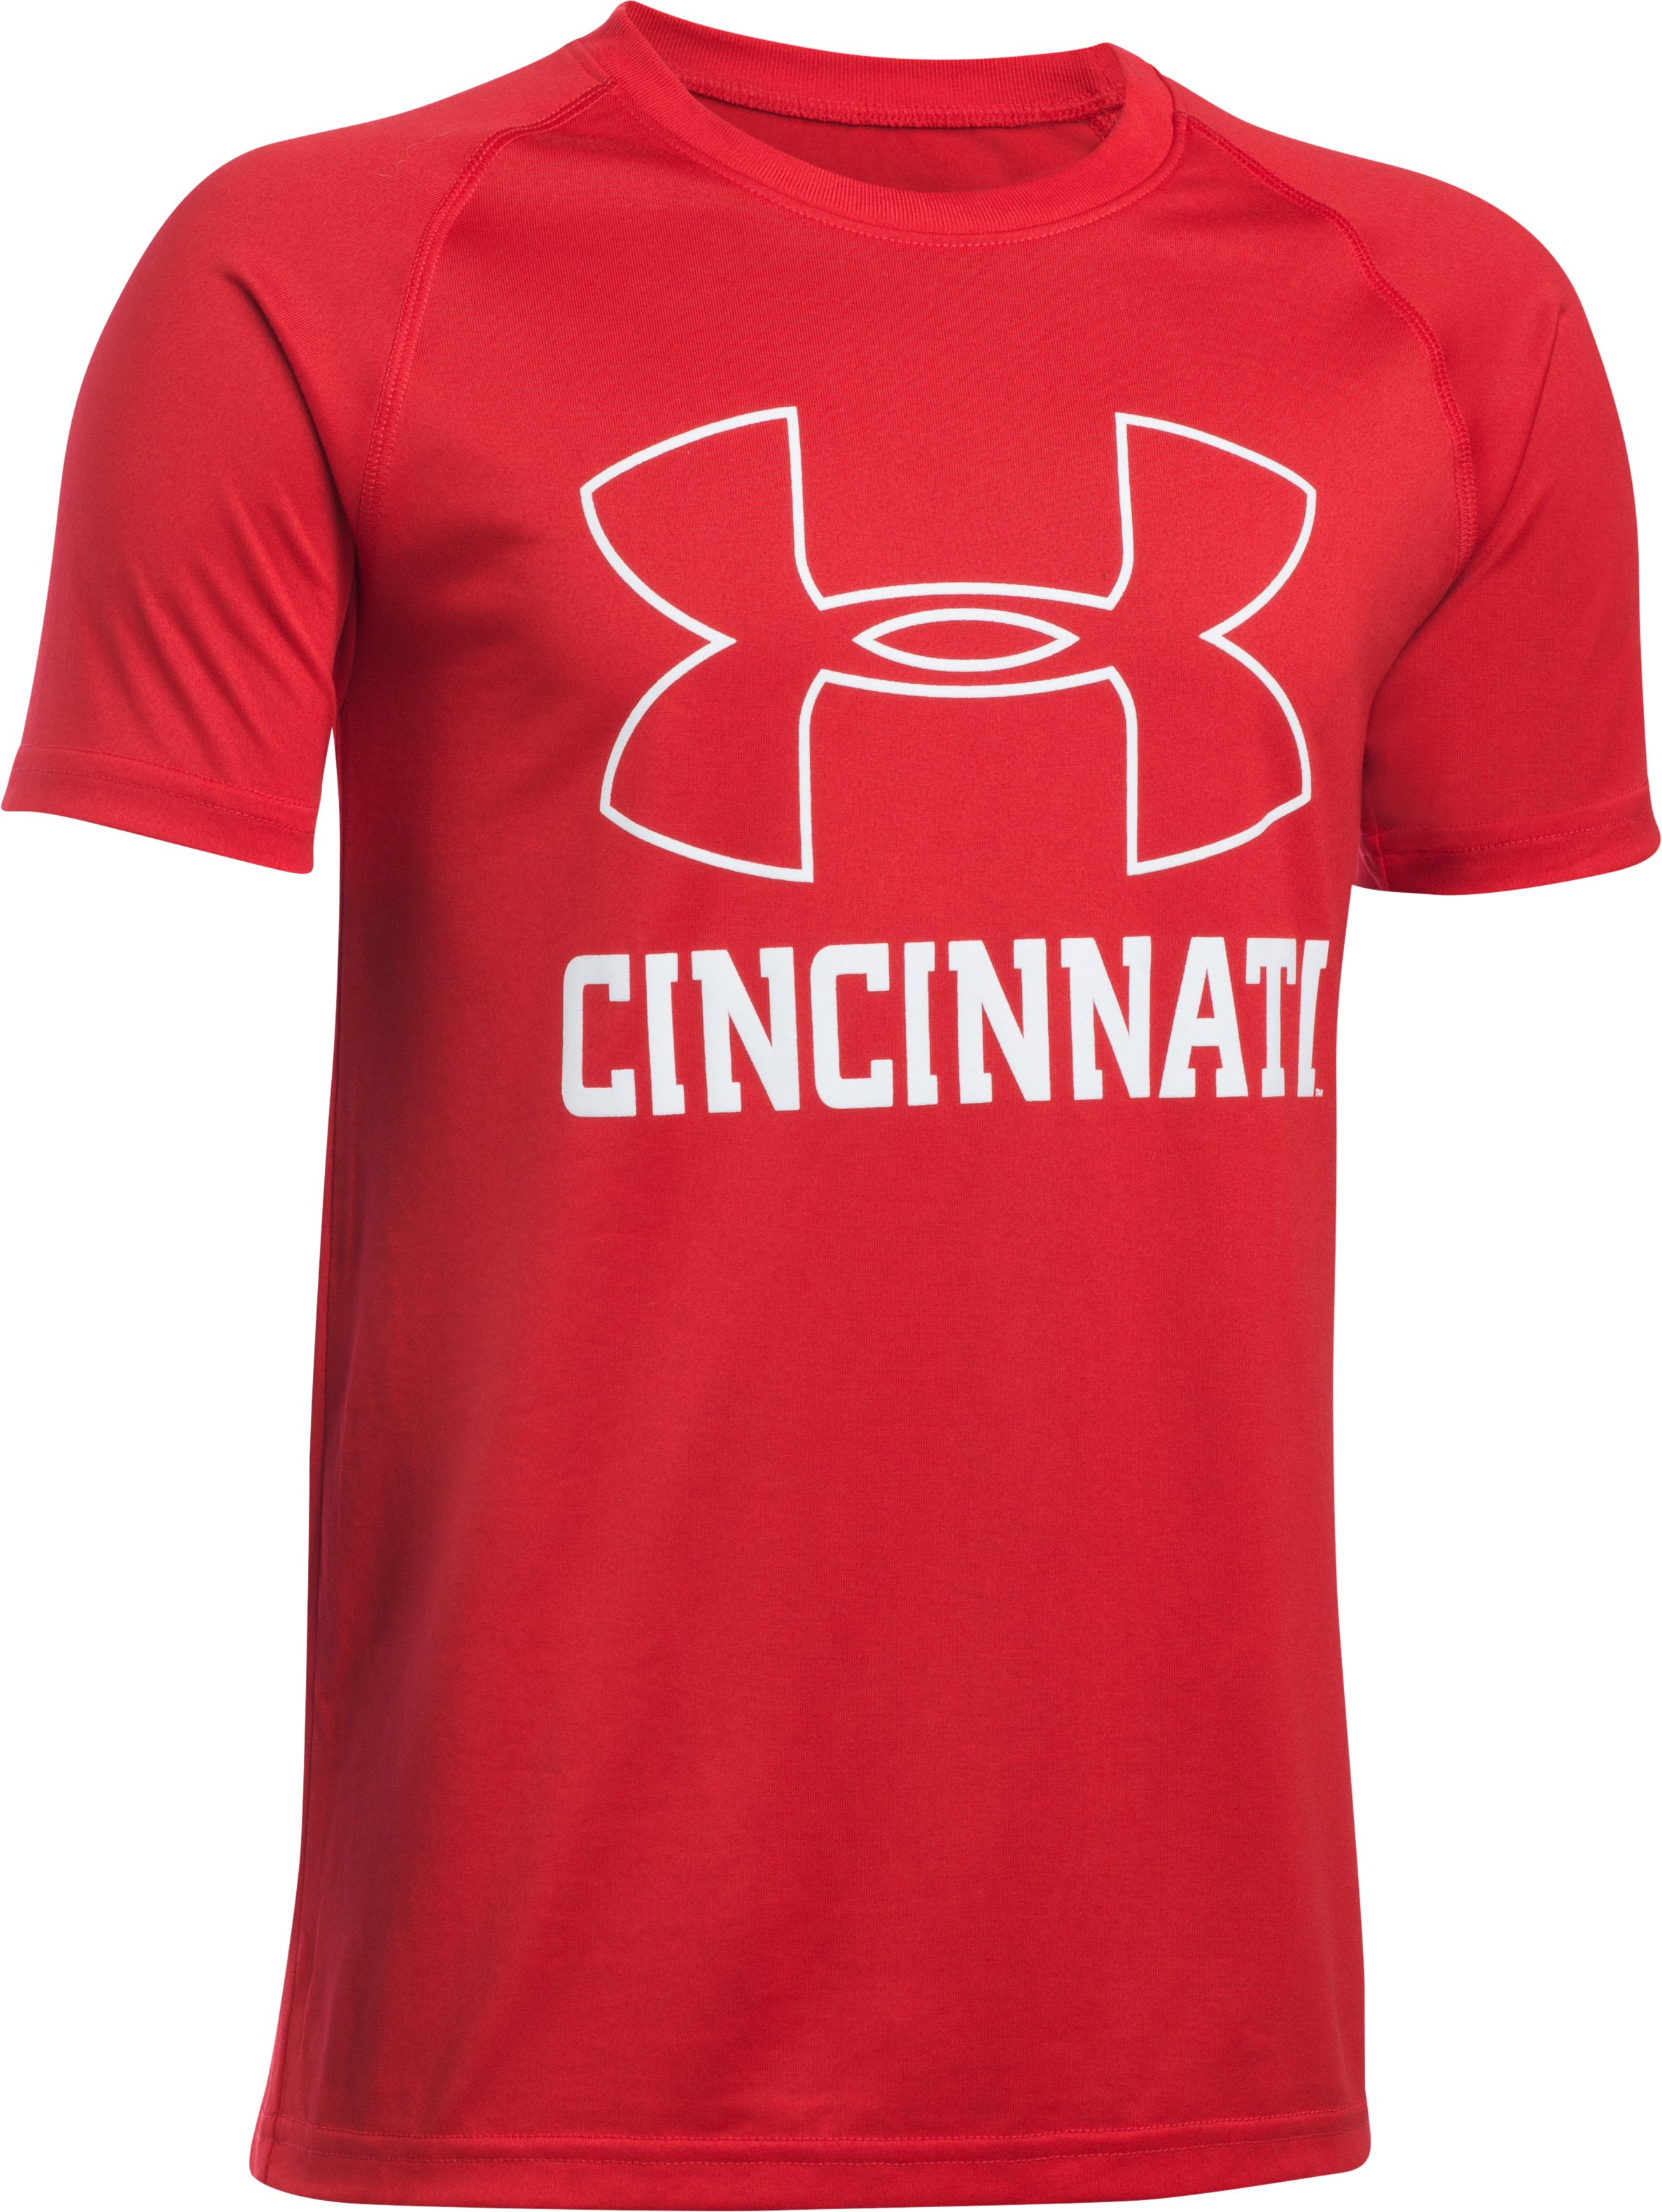 Boy's Cincy Graphic Tee, Red, zoomed image